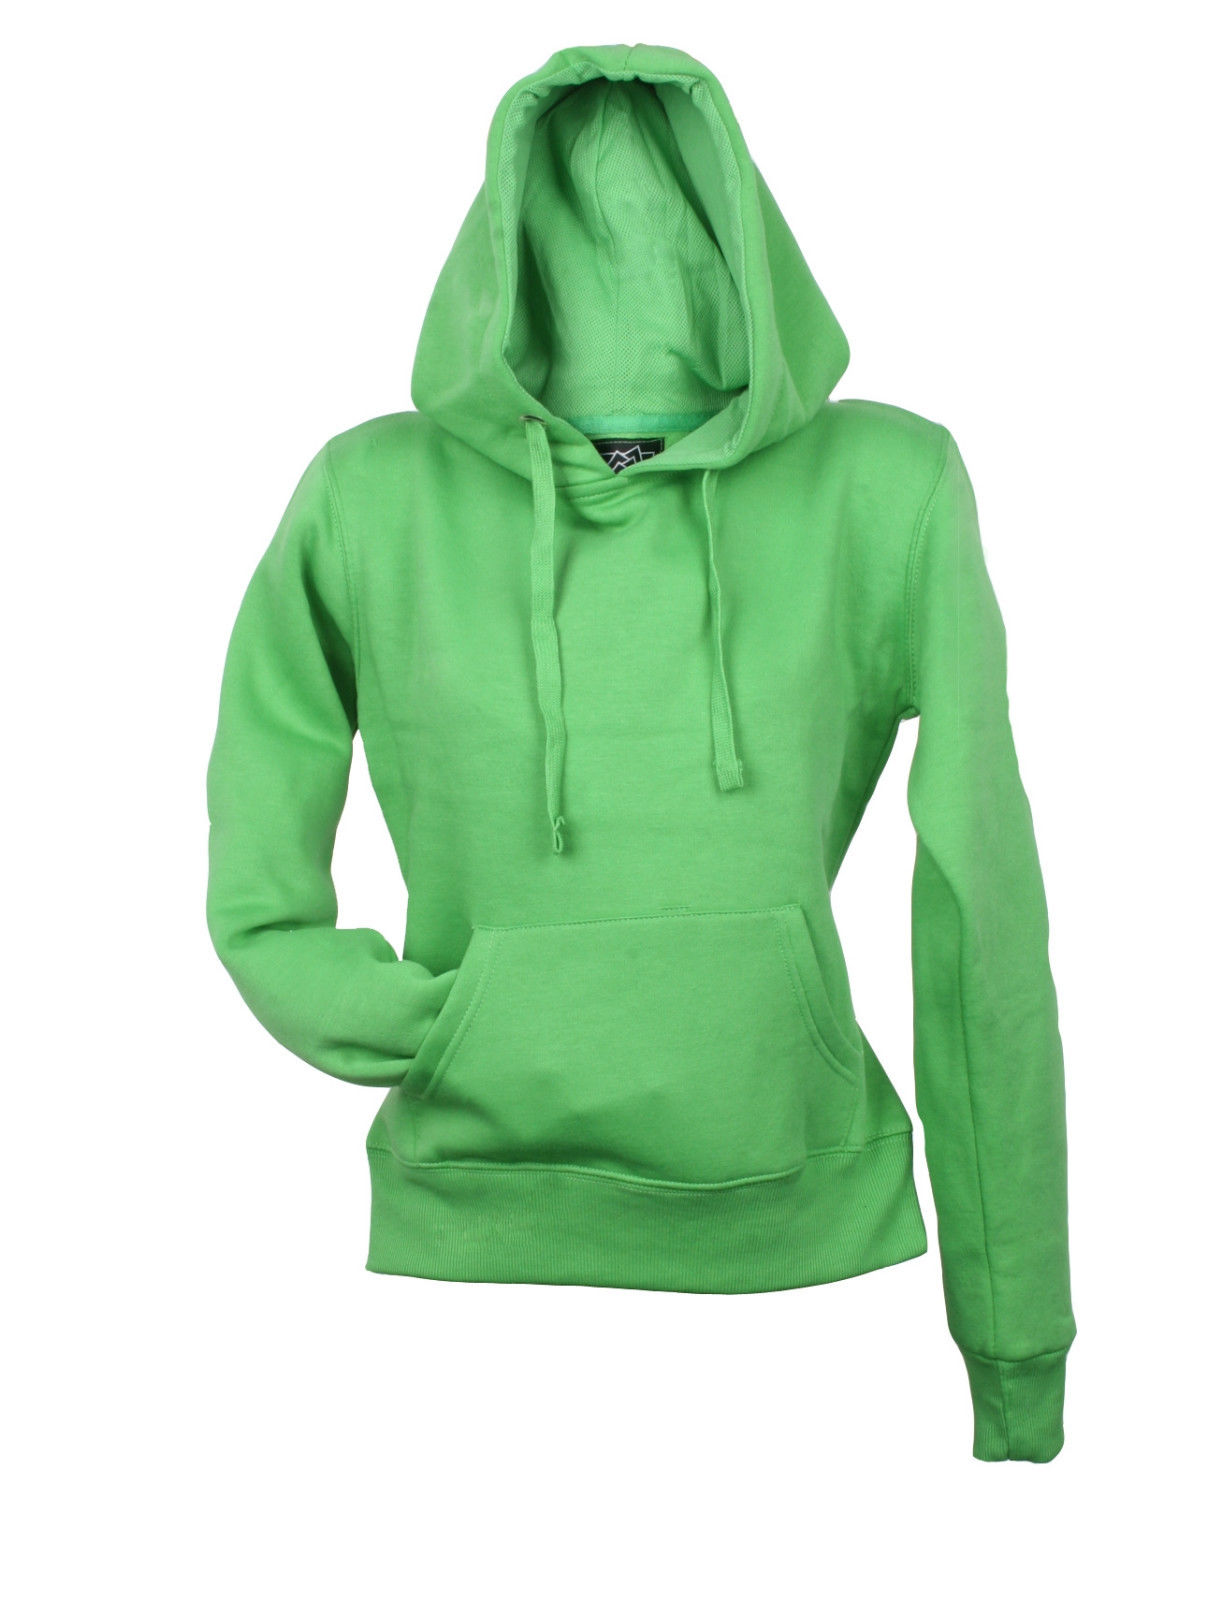 Solid Color Women Plain Hoodies - Buy Plain Hoodies,Cheap Plain ...